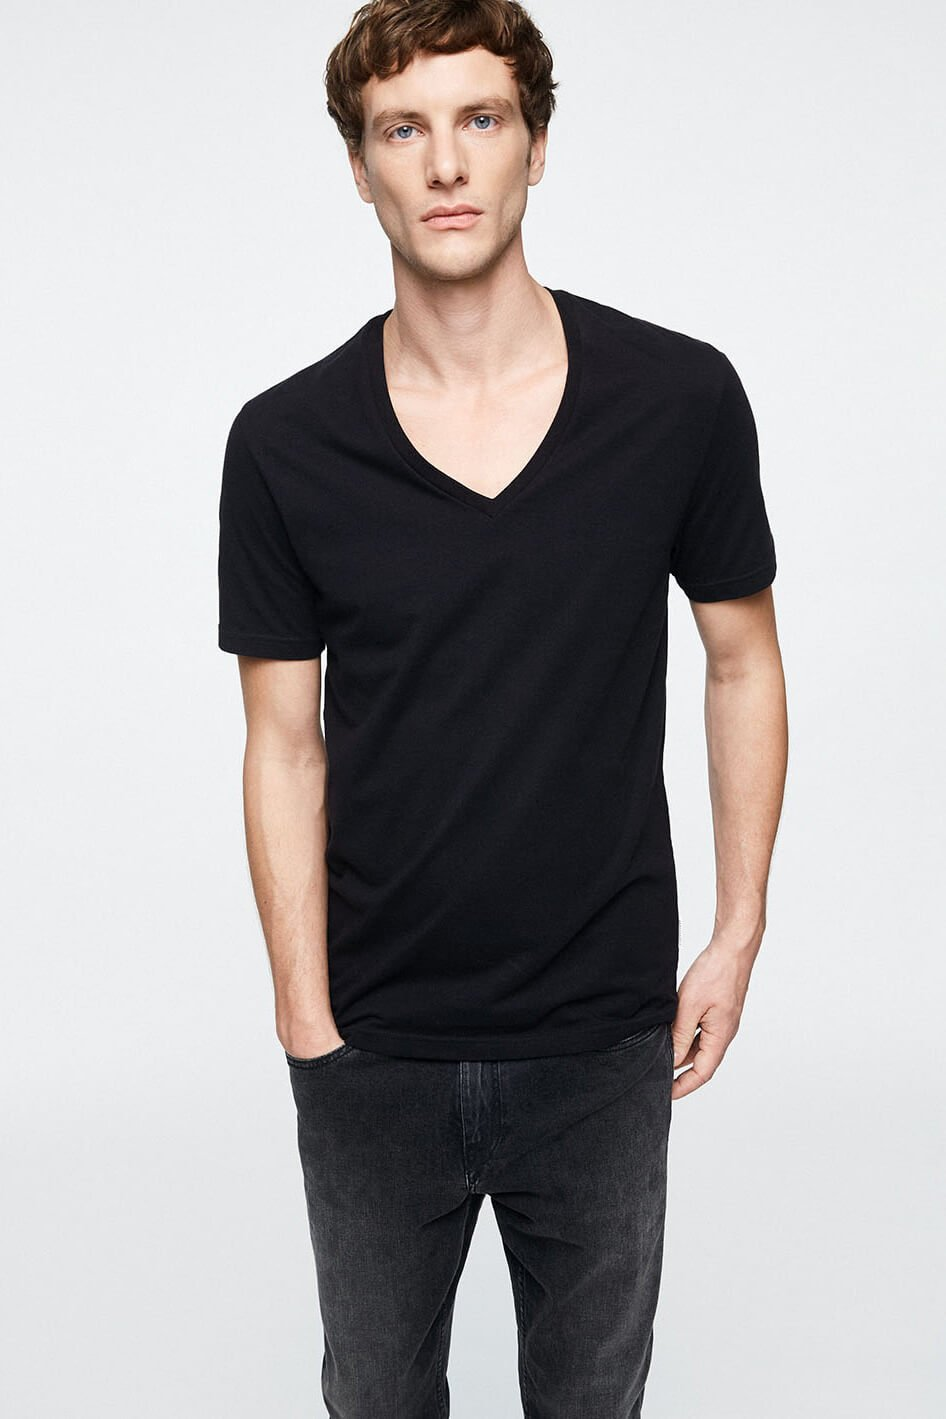 T-Shirt Chaarlie Schwarz from LOVECO